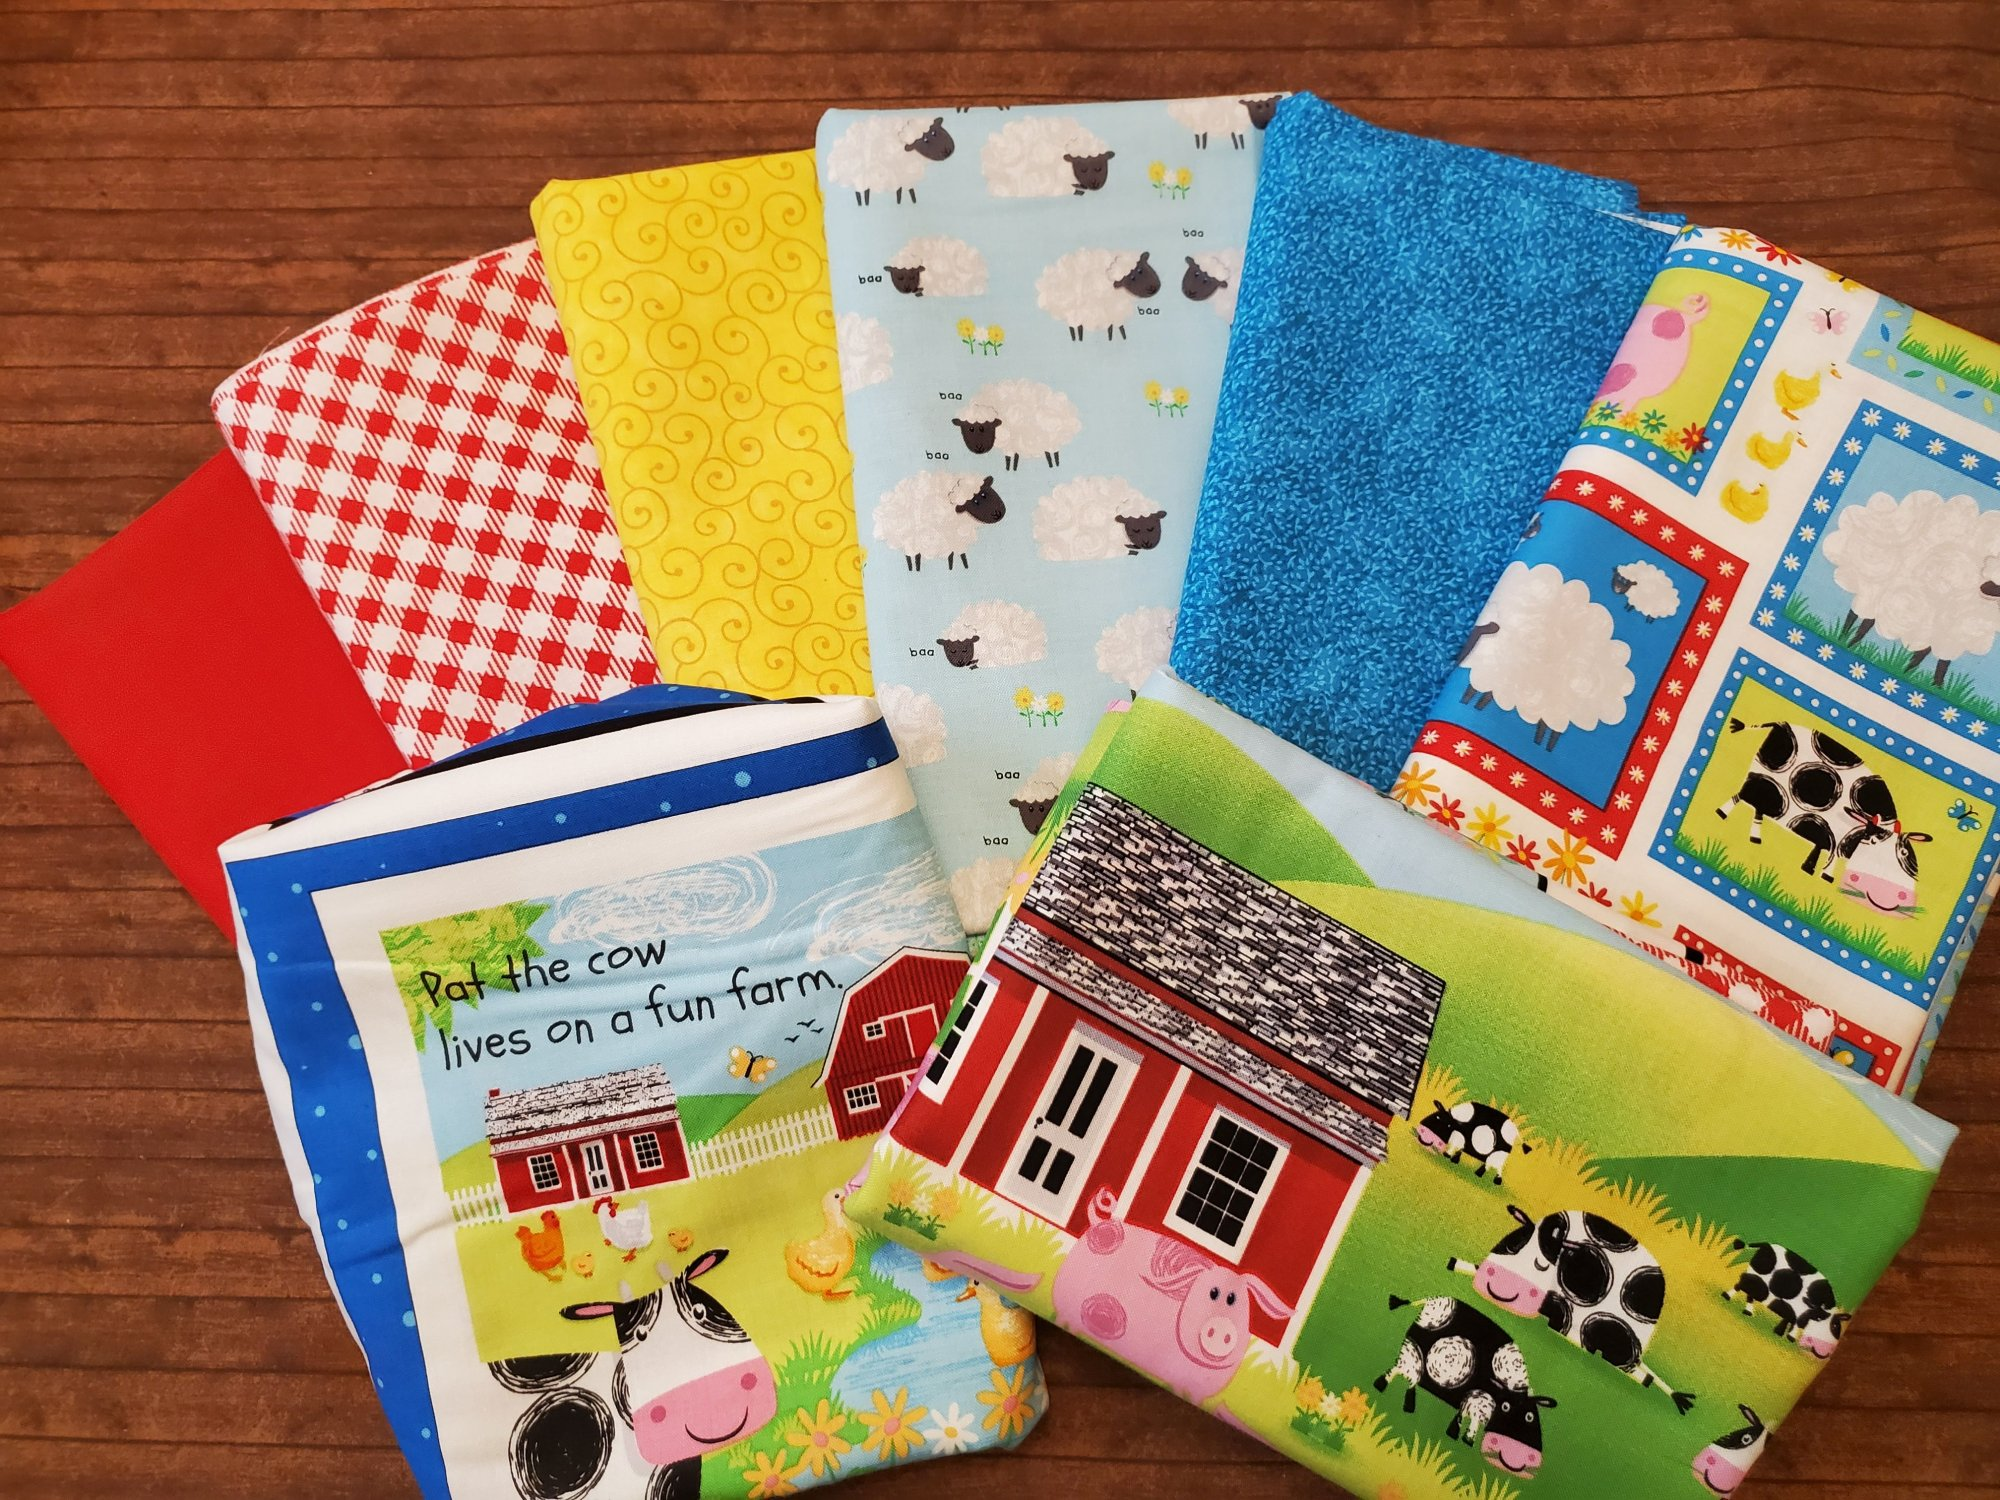 Best Friends Farm by Kate Mawdisley for Henry Glass Fabrics - 6 Piece FULL Yards + 2 panels (Cloth Book plus Large Scenic Panel)Bundle Pack